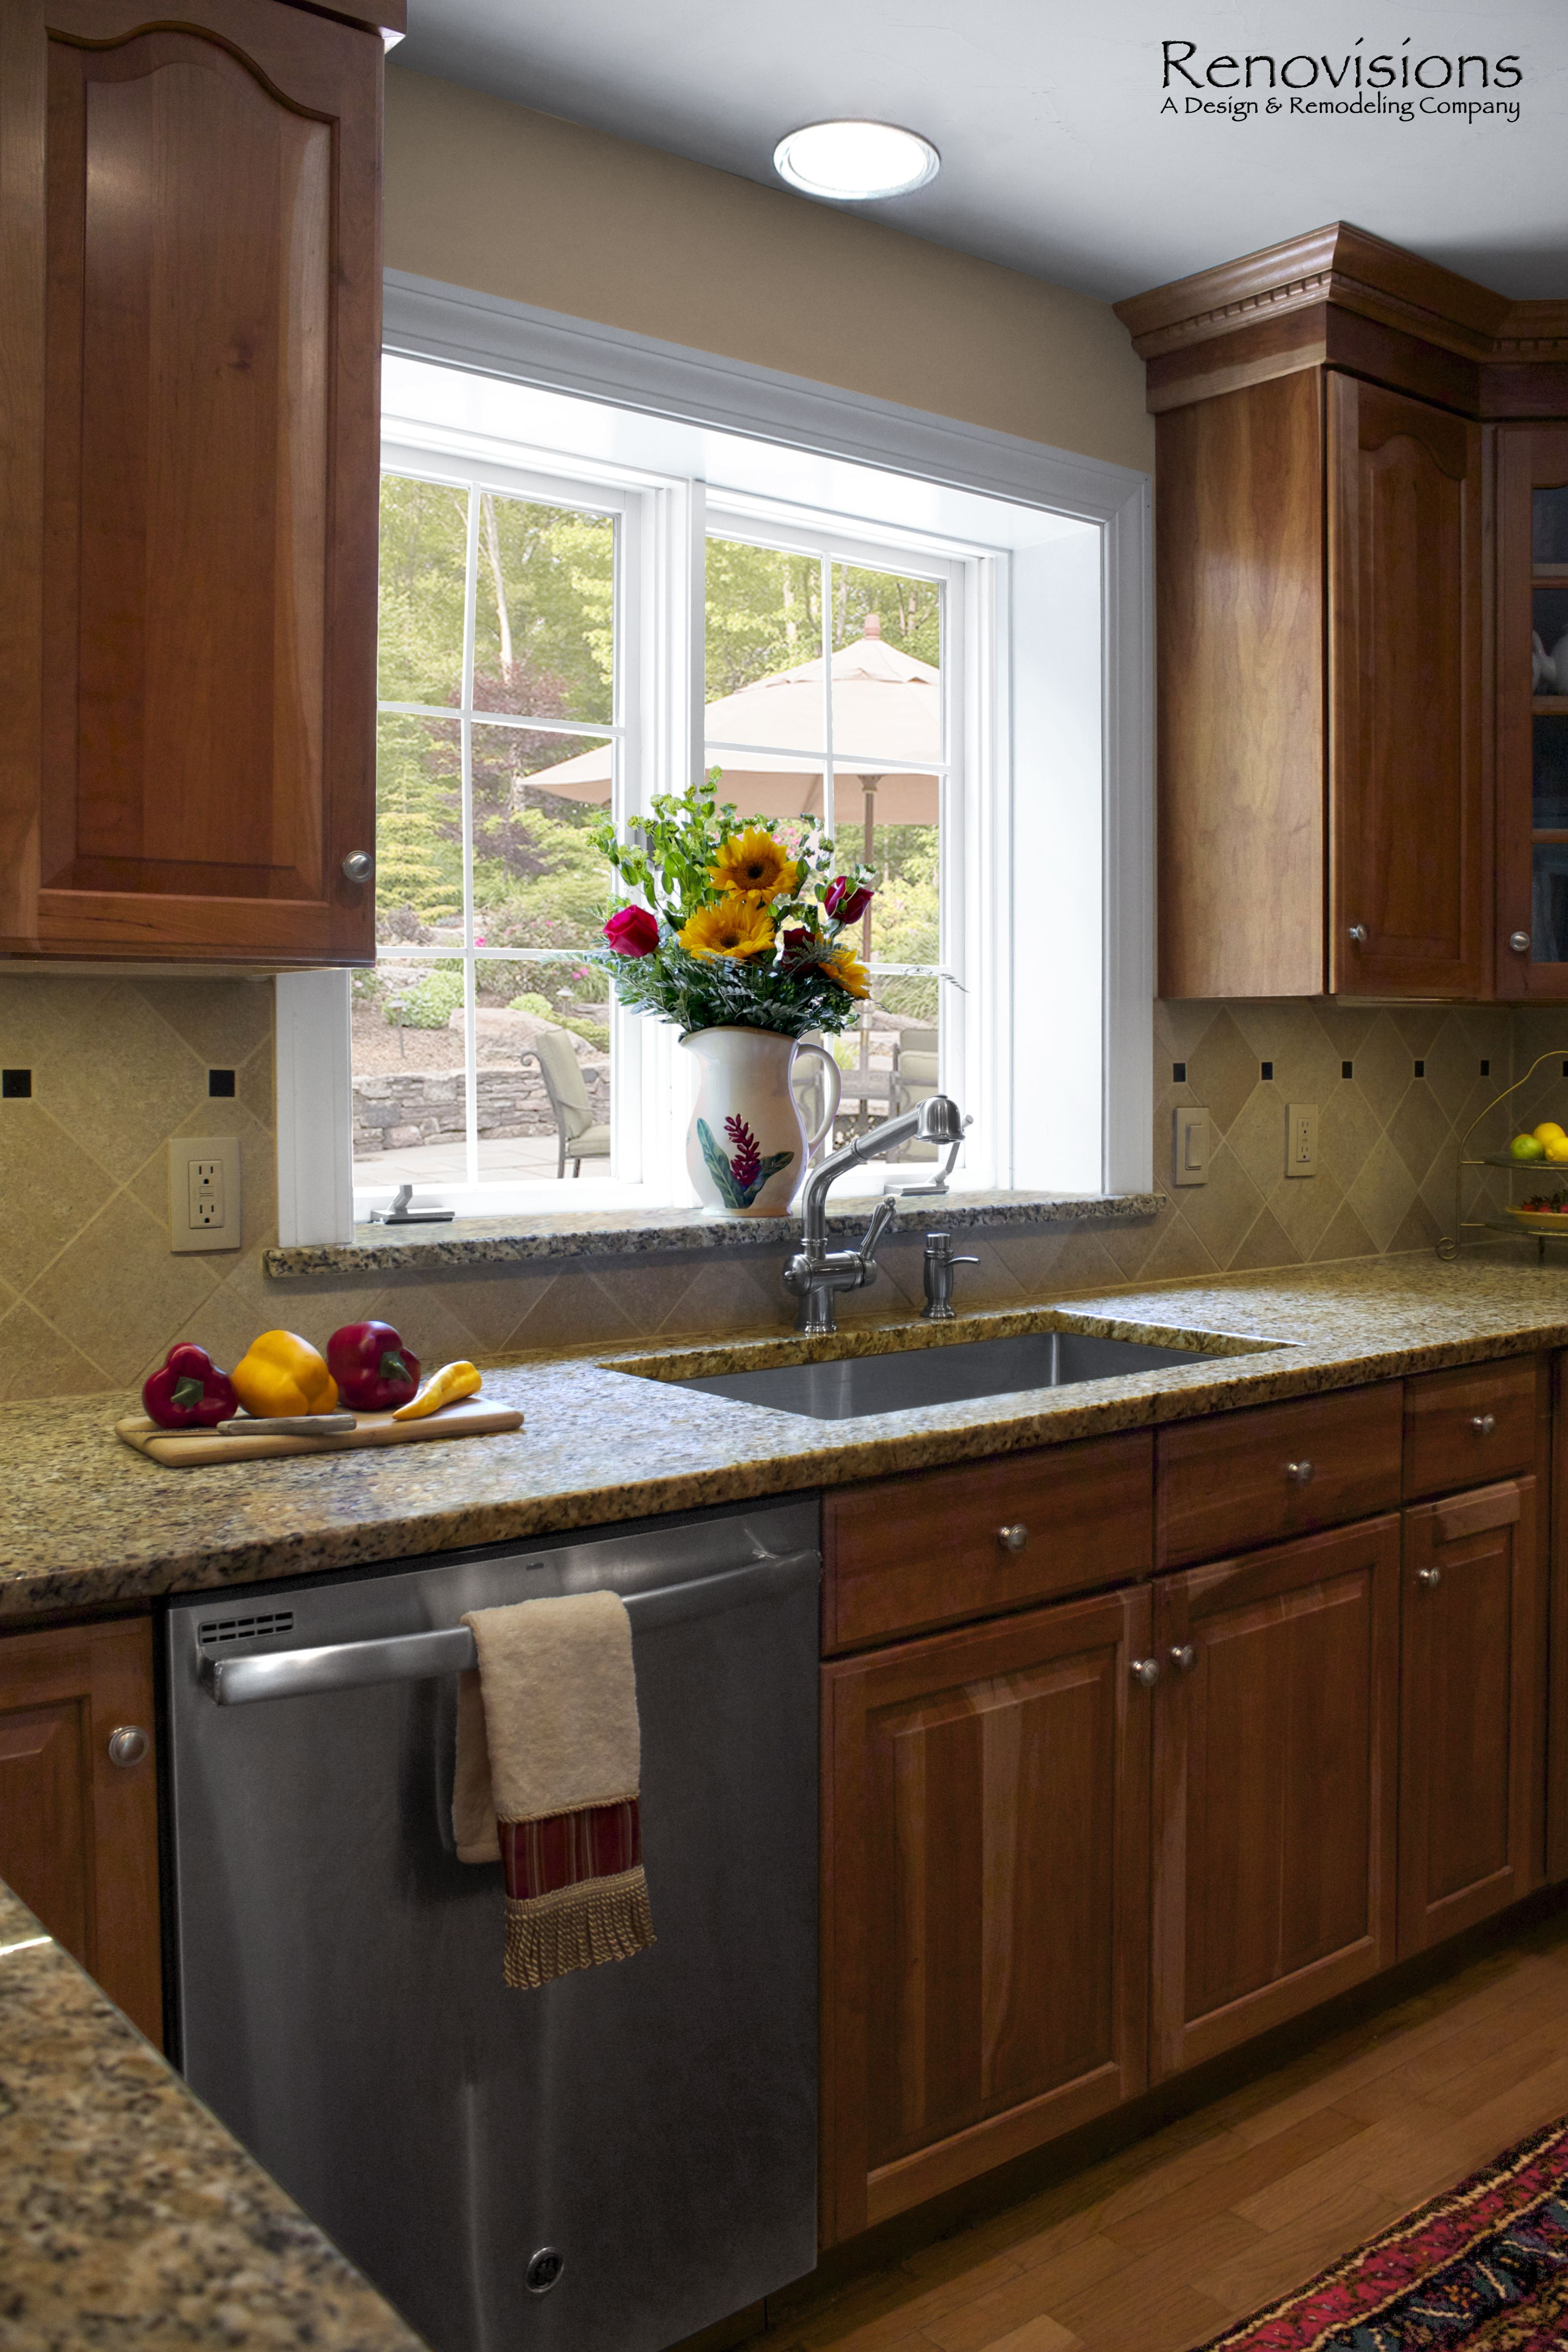 Stainless Steel Cabinets And Countertops Kitchen Remodel By Renovisions Decorative Tan And Black